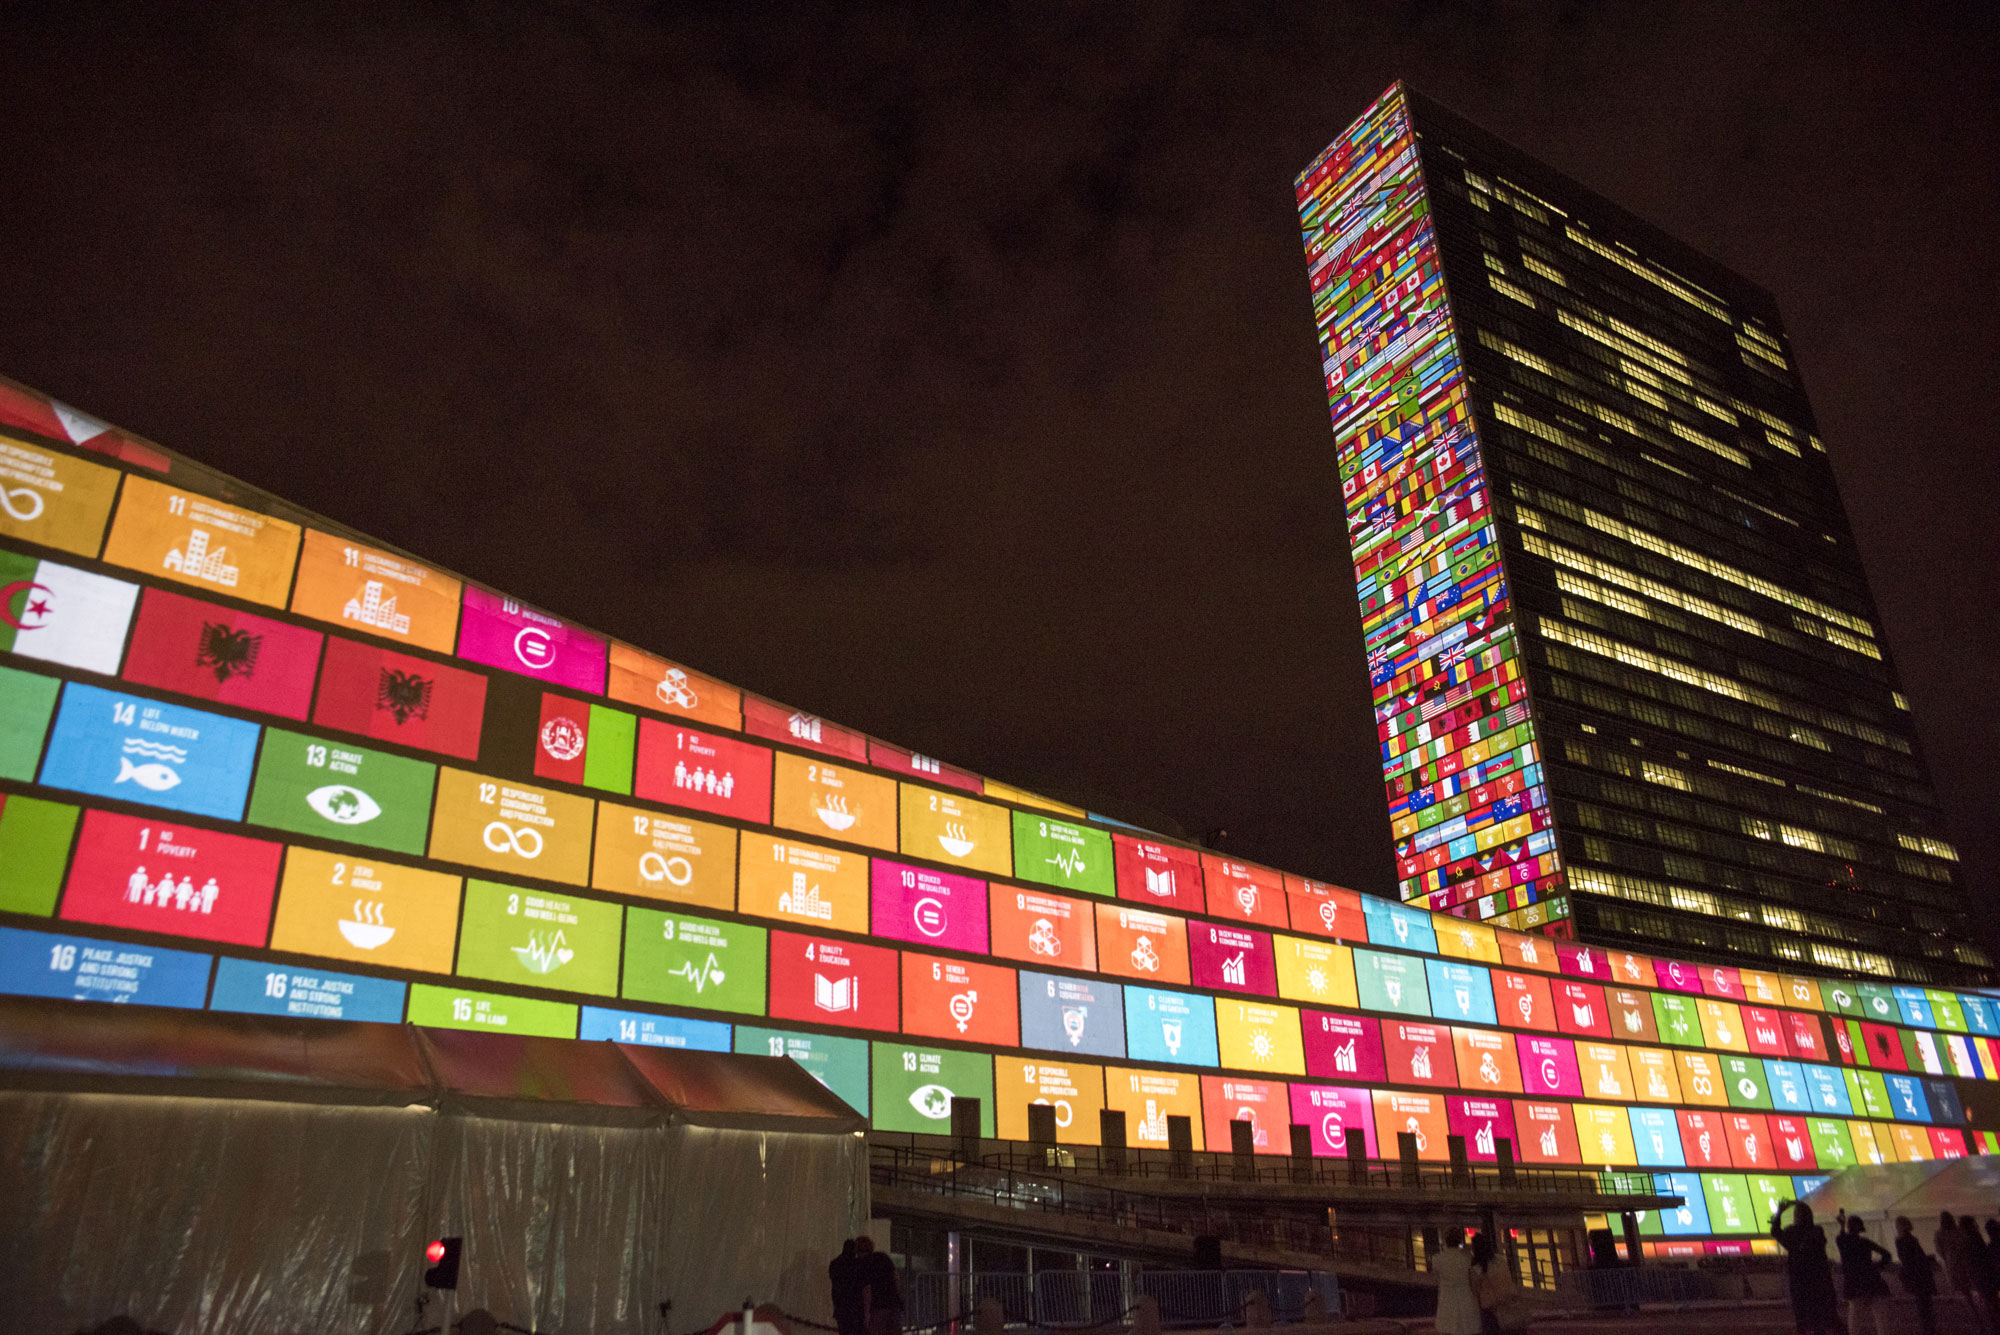 A film introducing the Sustainable Development Goals is projected on the UN's New York Headquarters buildings ahead of a General Assembly summit in September. UN Photo/Cia Pak